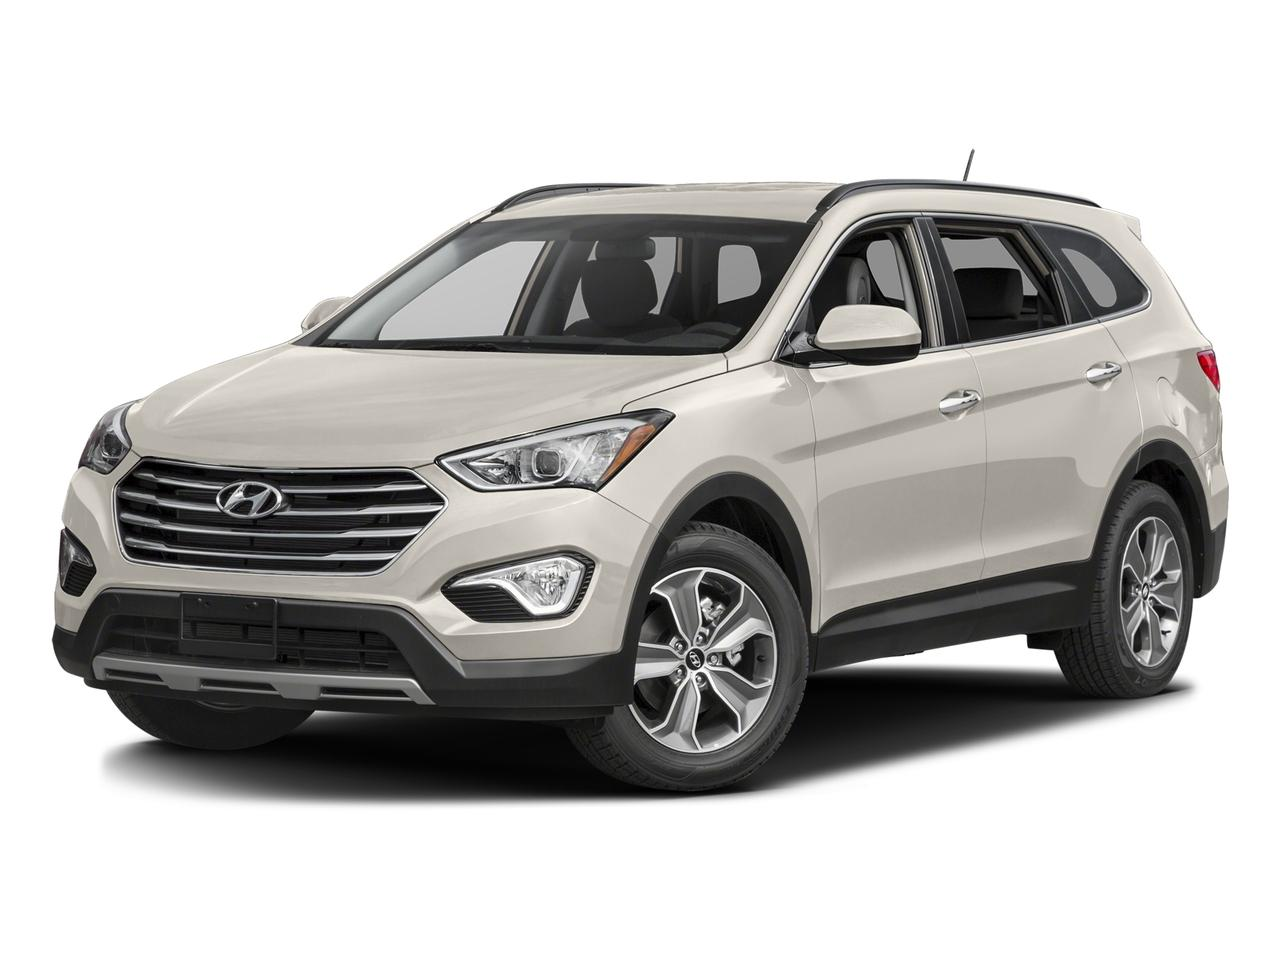 2016 Hyundai Santa Fe Vehicle Photo in Beaufort, SC 29906